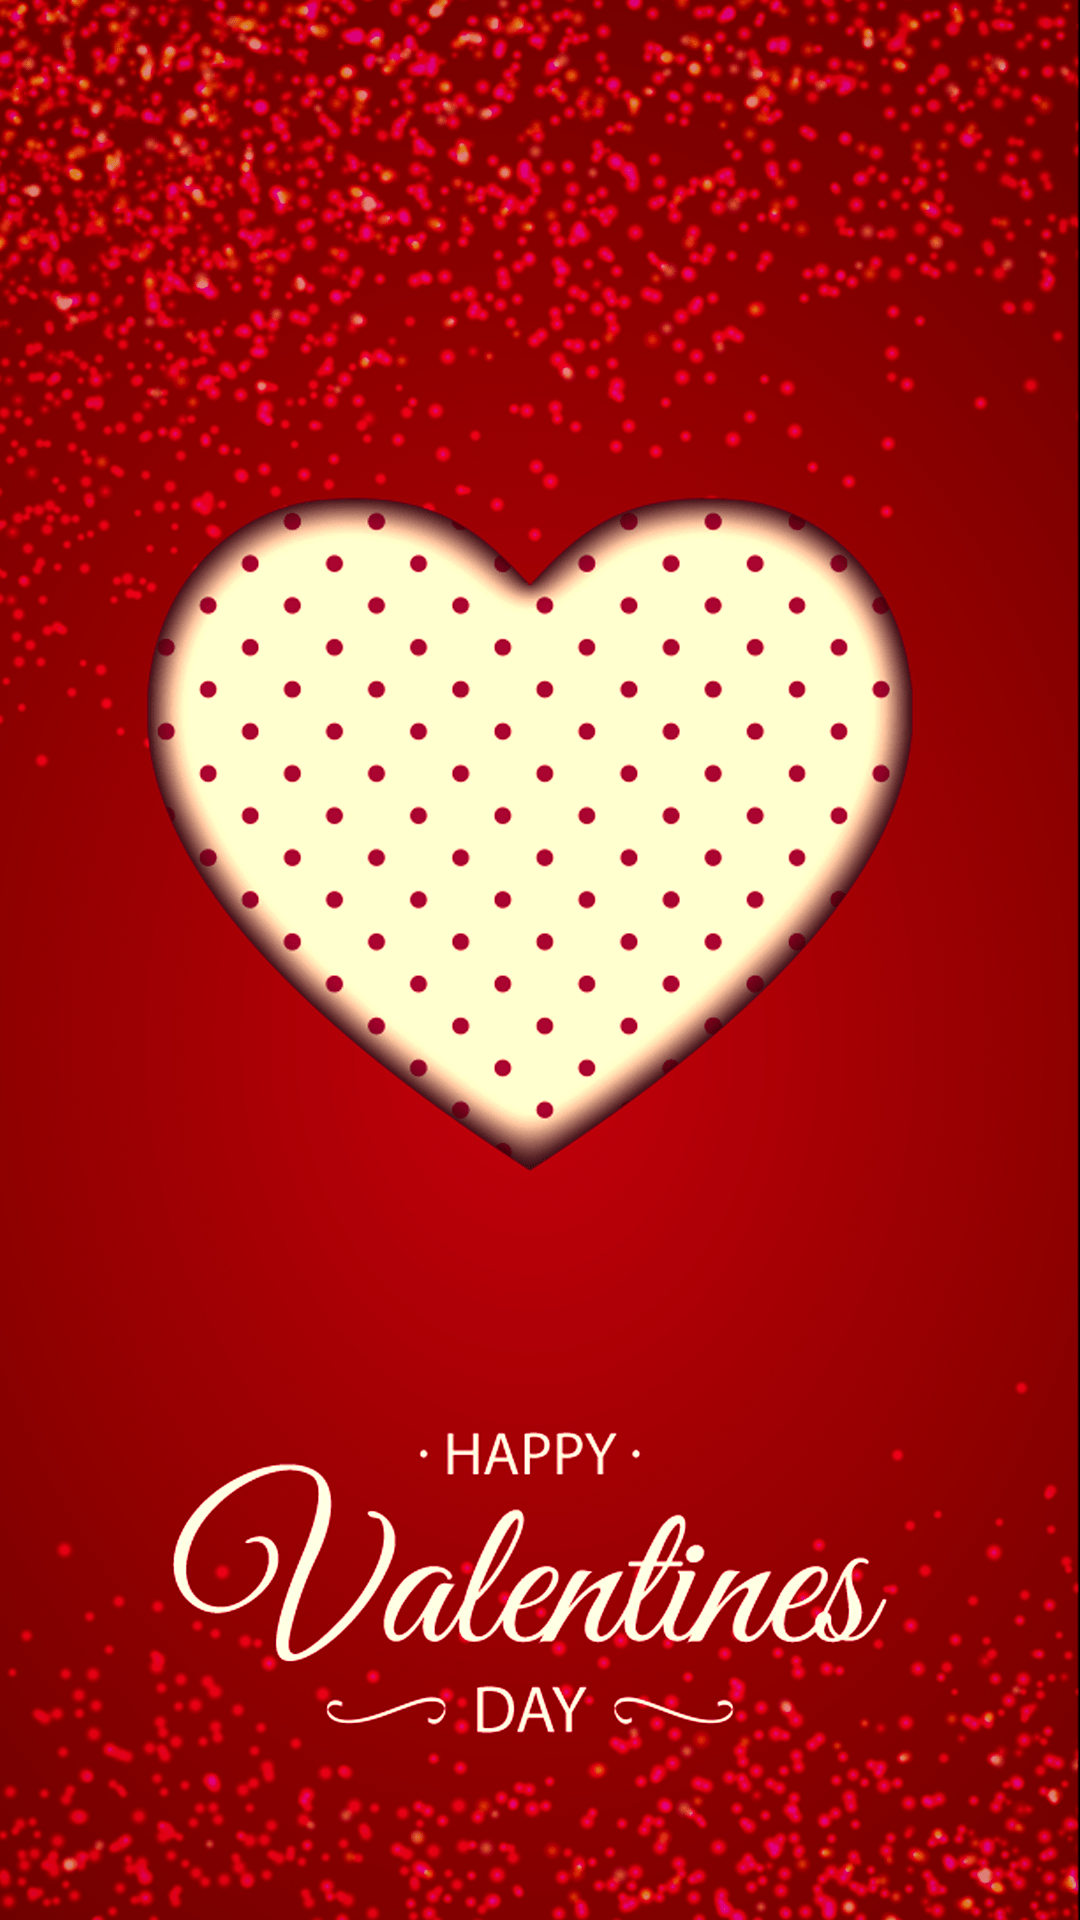 Happy Valentines Day Wallpaper iPhone   KoLPaPer   Awesome HD 1080x1920